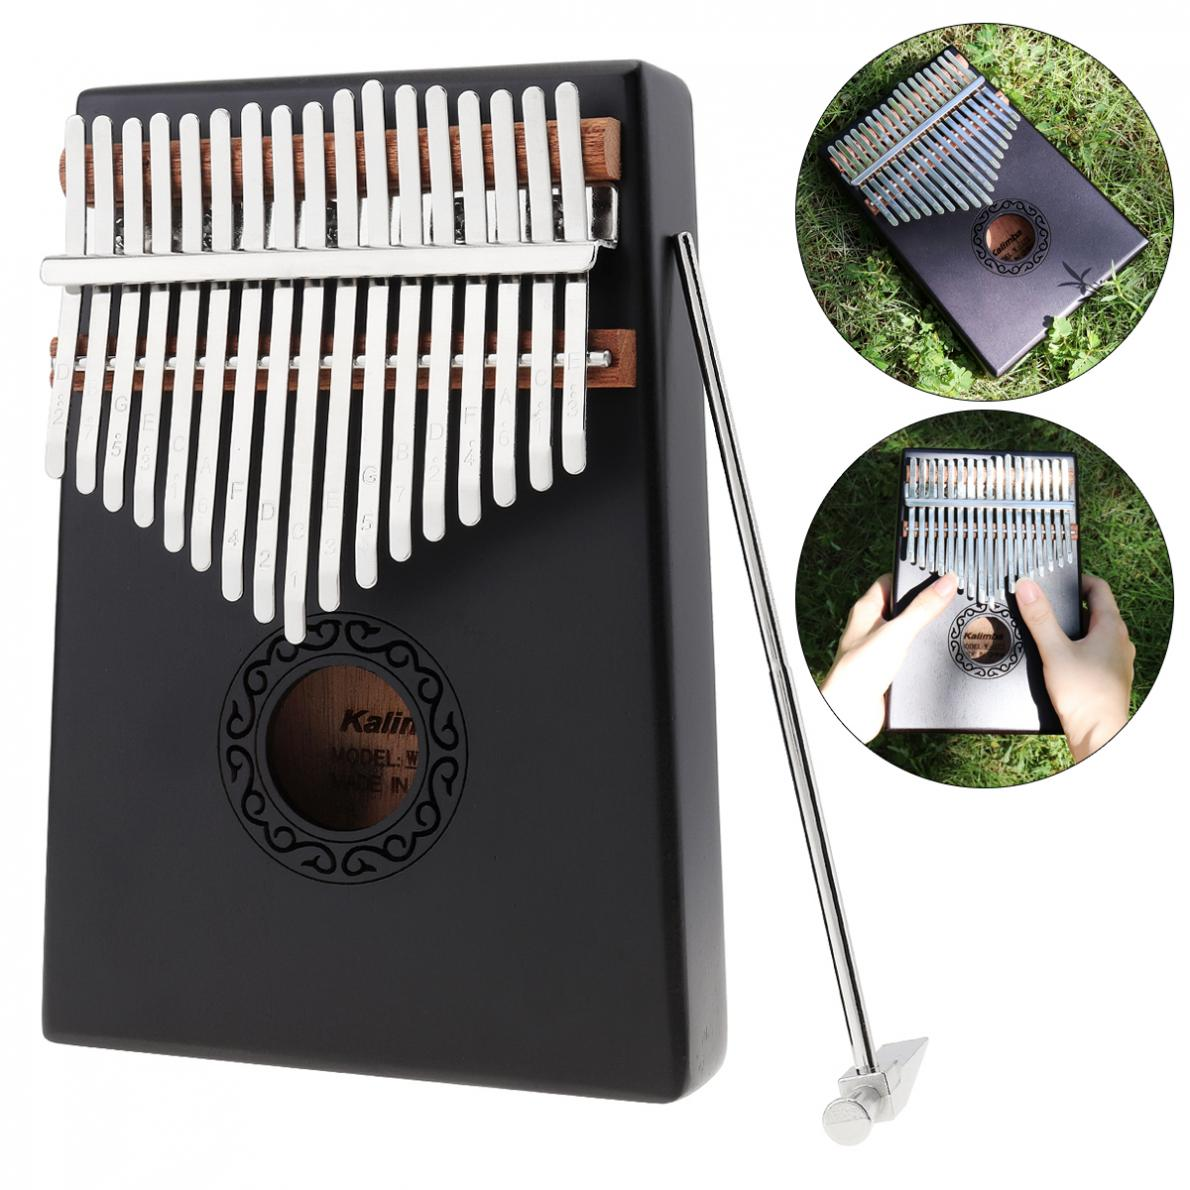 17 Key Gray Kalimba Single Board Mahogany Thumb Piano Mbira Mini Keyboard Instrument with Complete Accessories enlarge